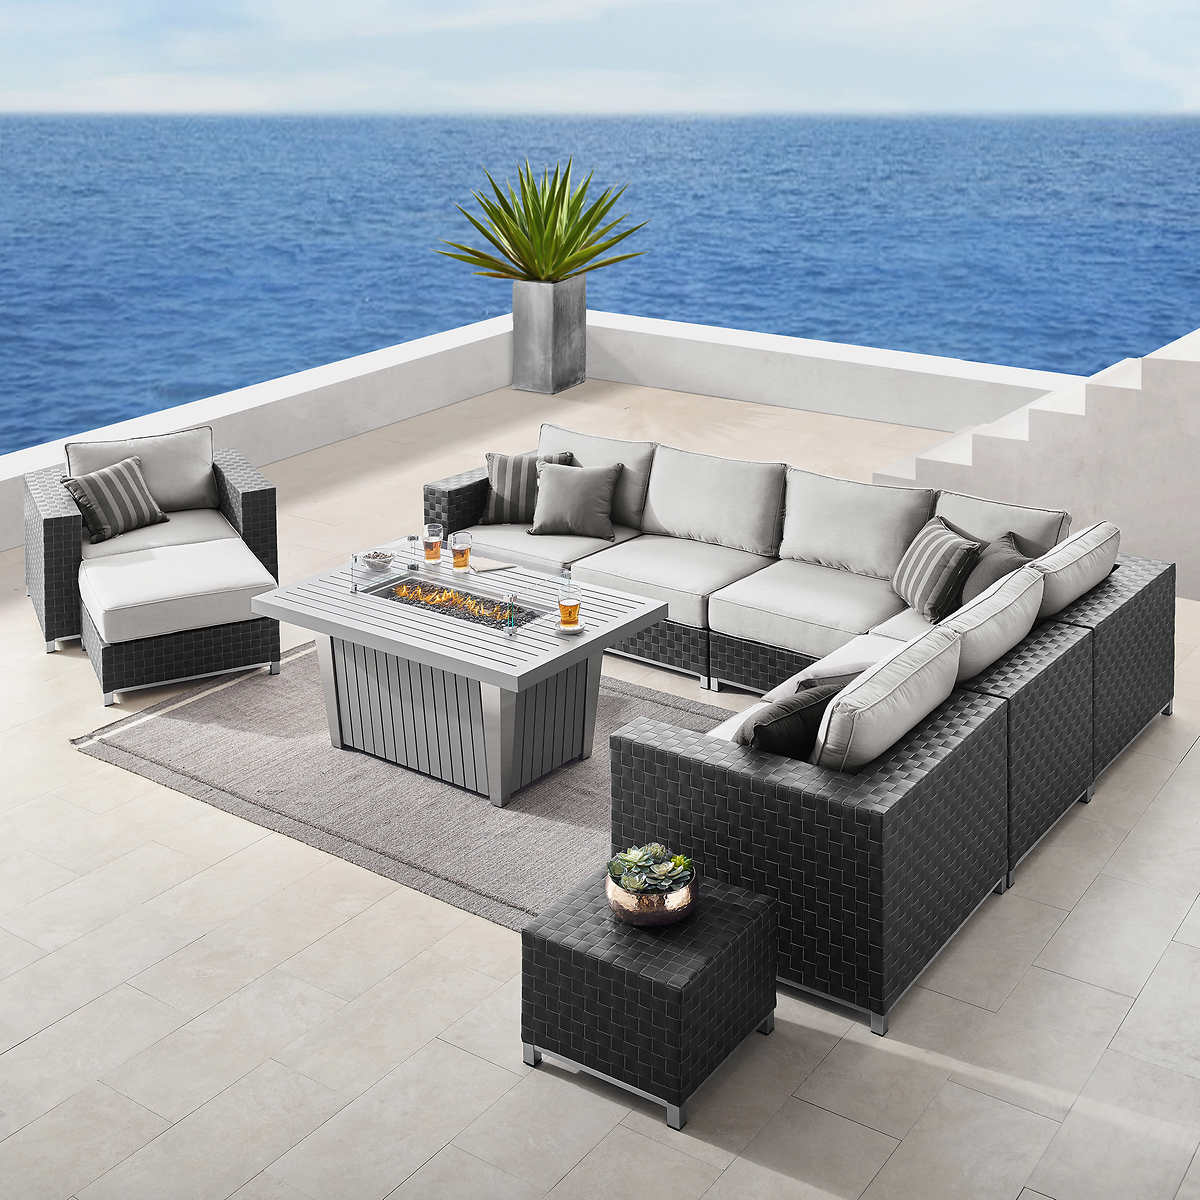 Soho 10-piece Seating with Fire by Sirio - Seating Sets